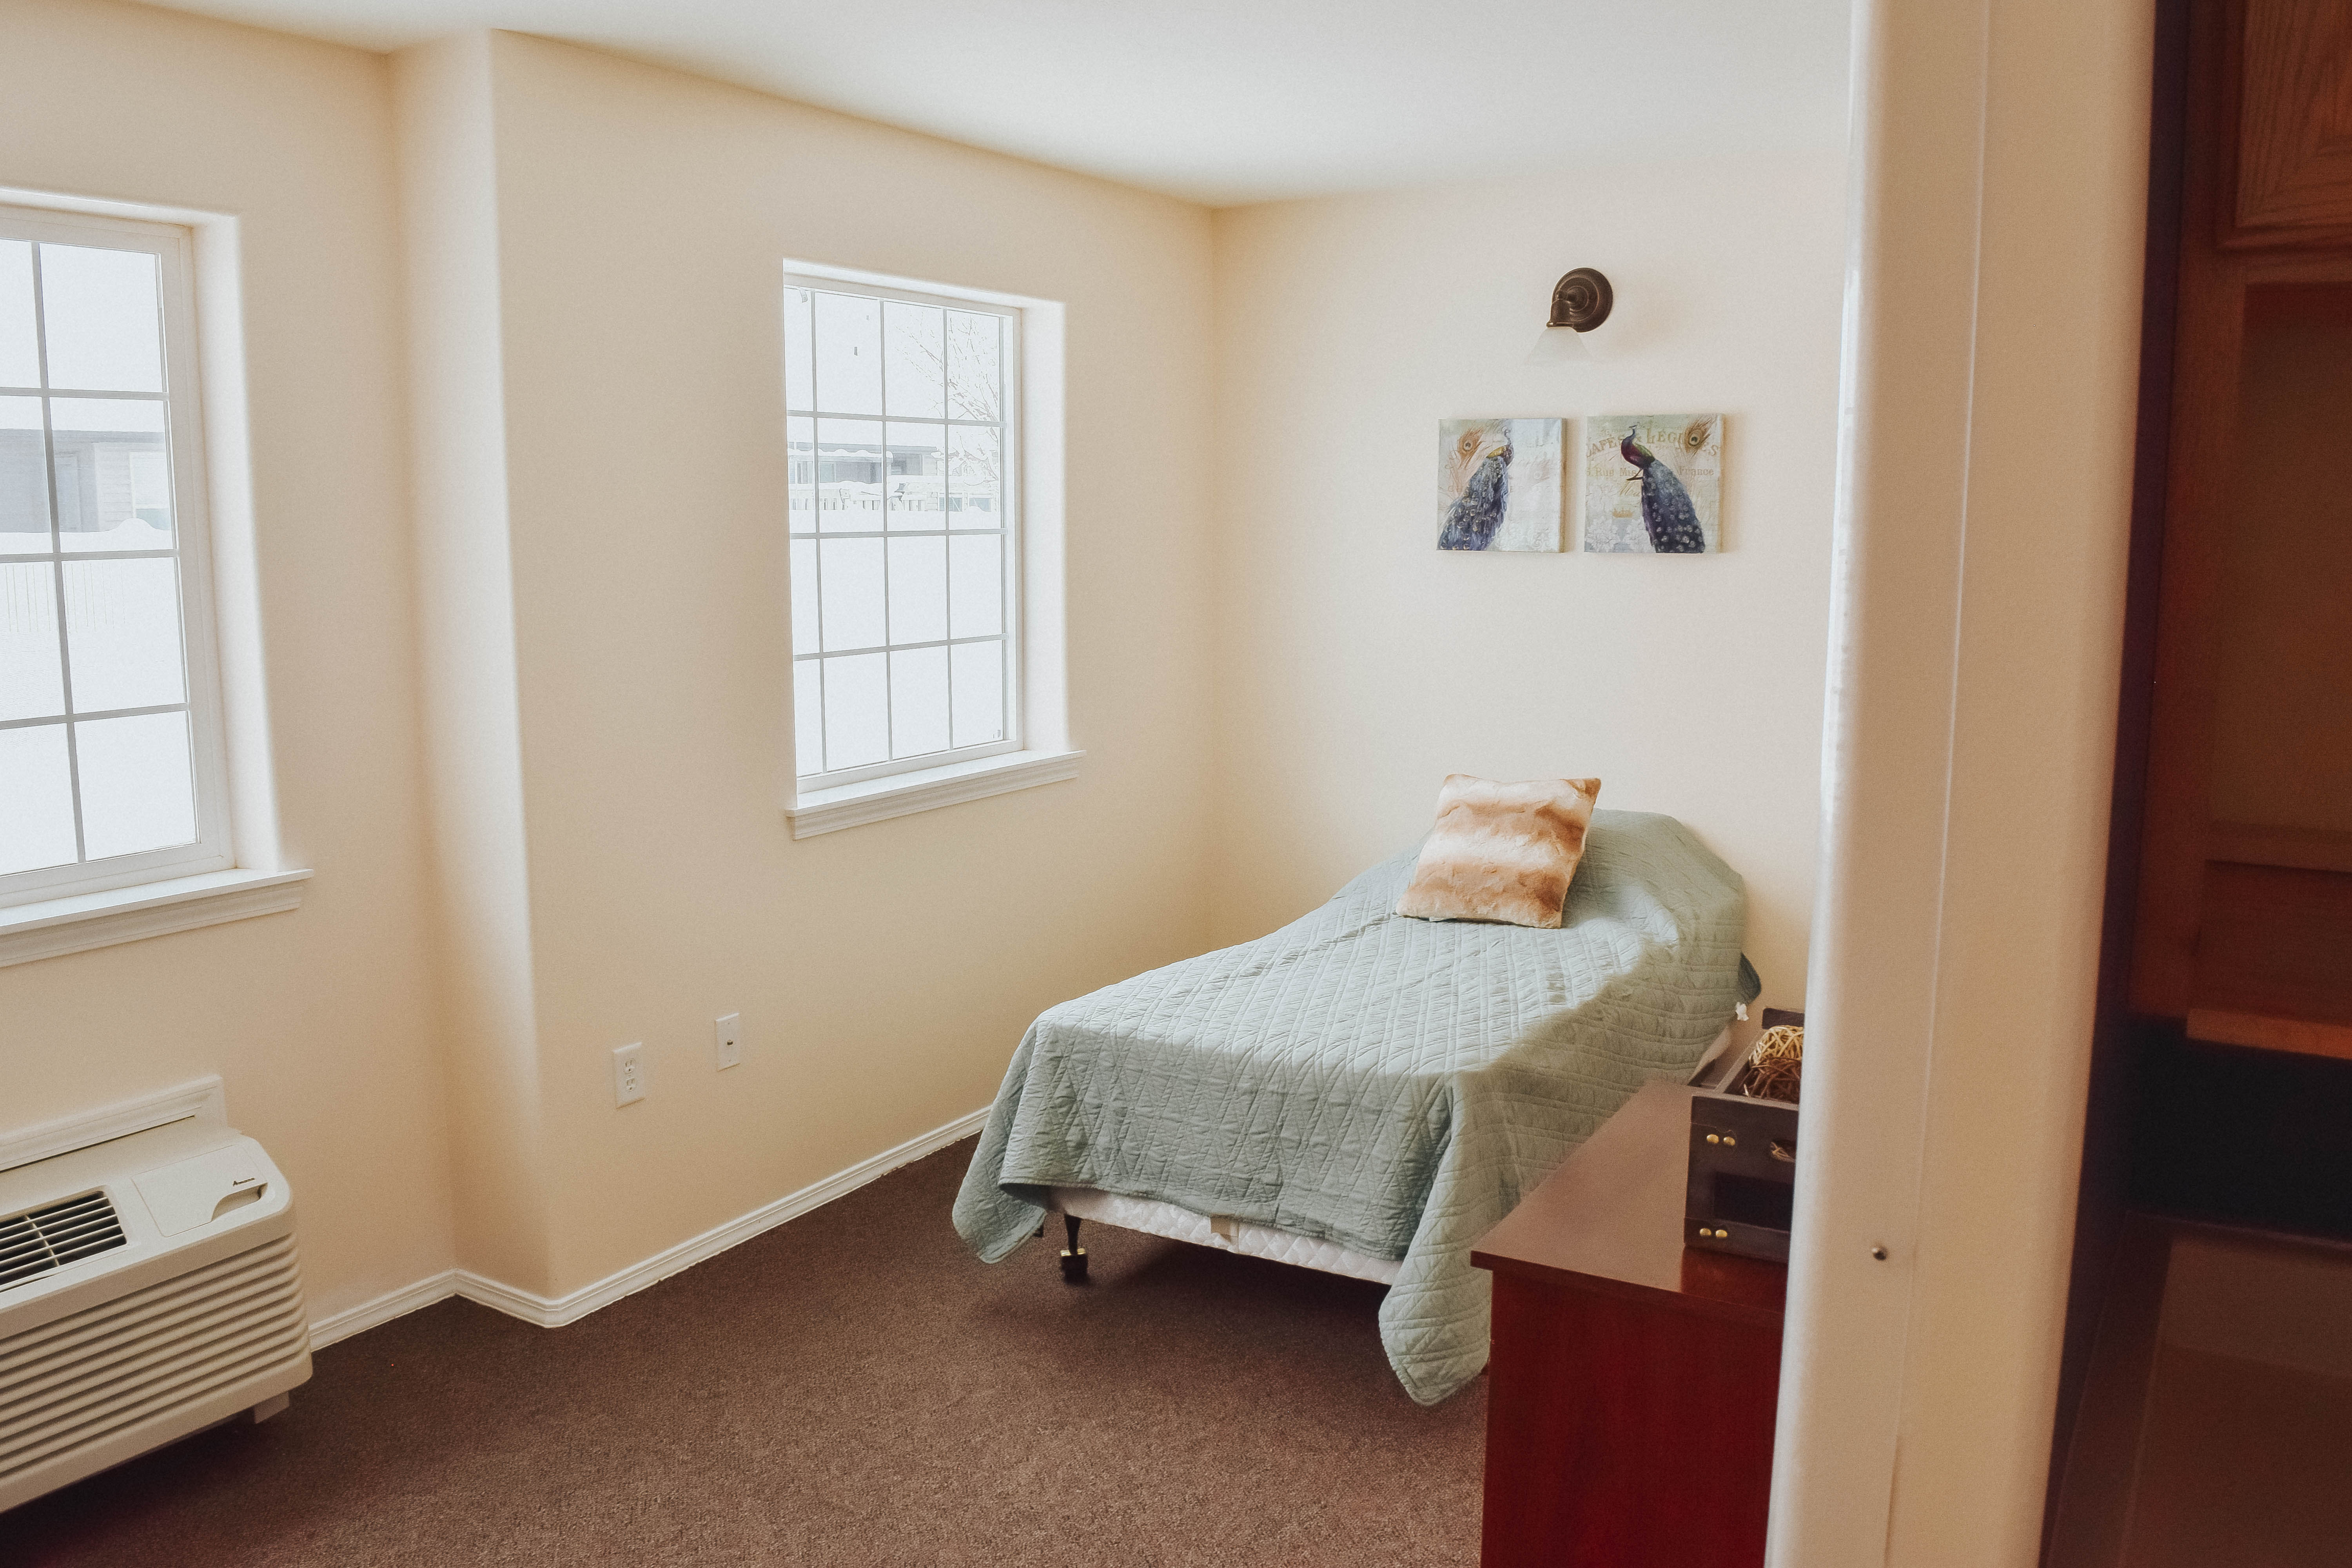 Tambree Meadows Assisted Living Bedroom 3